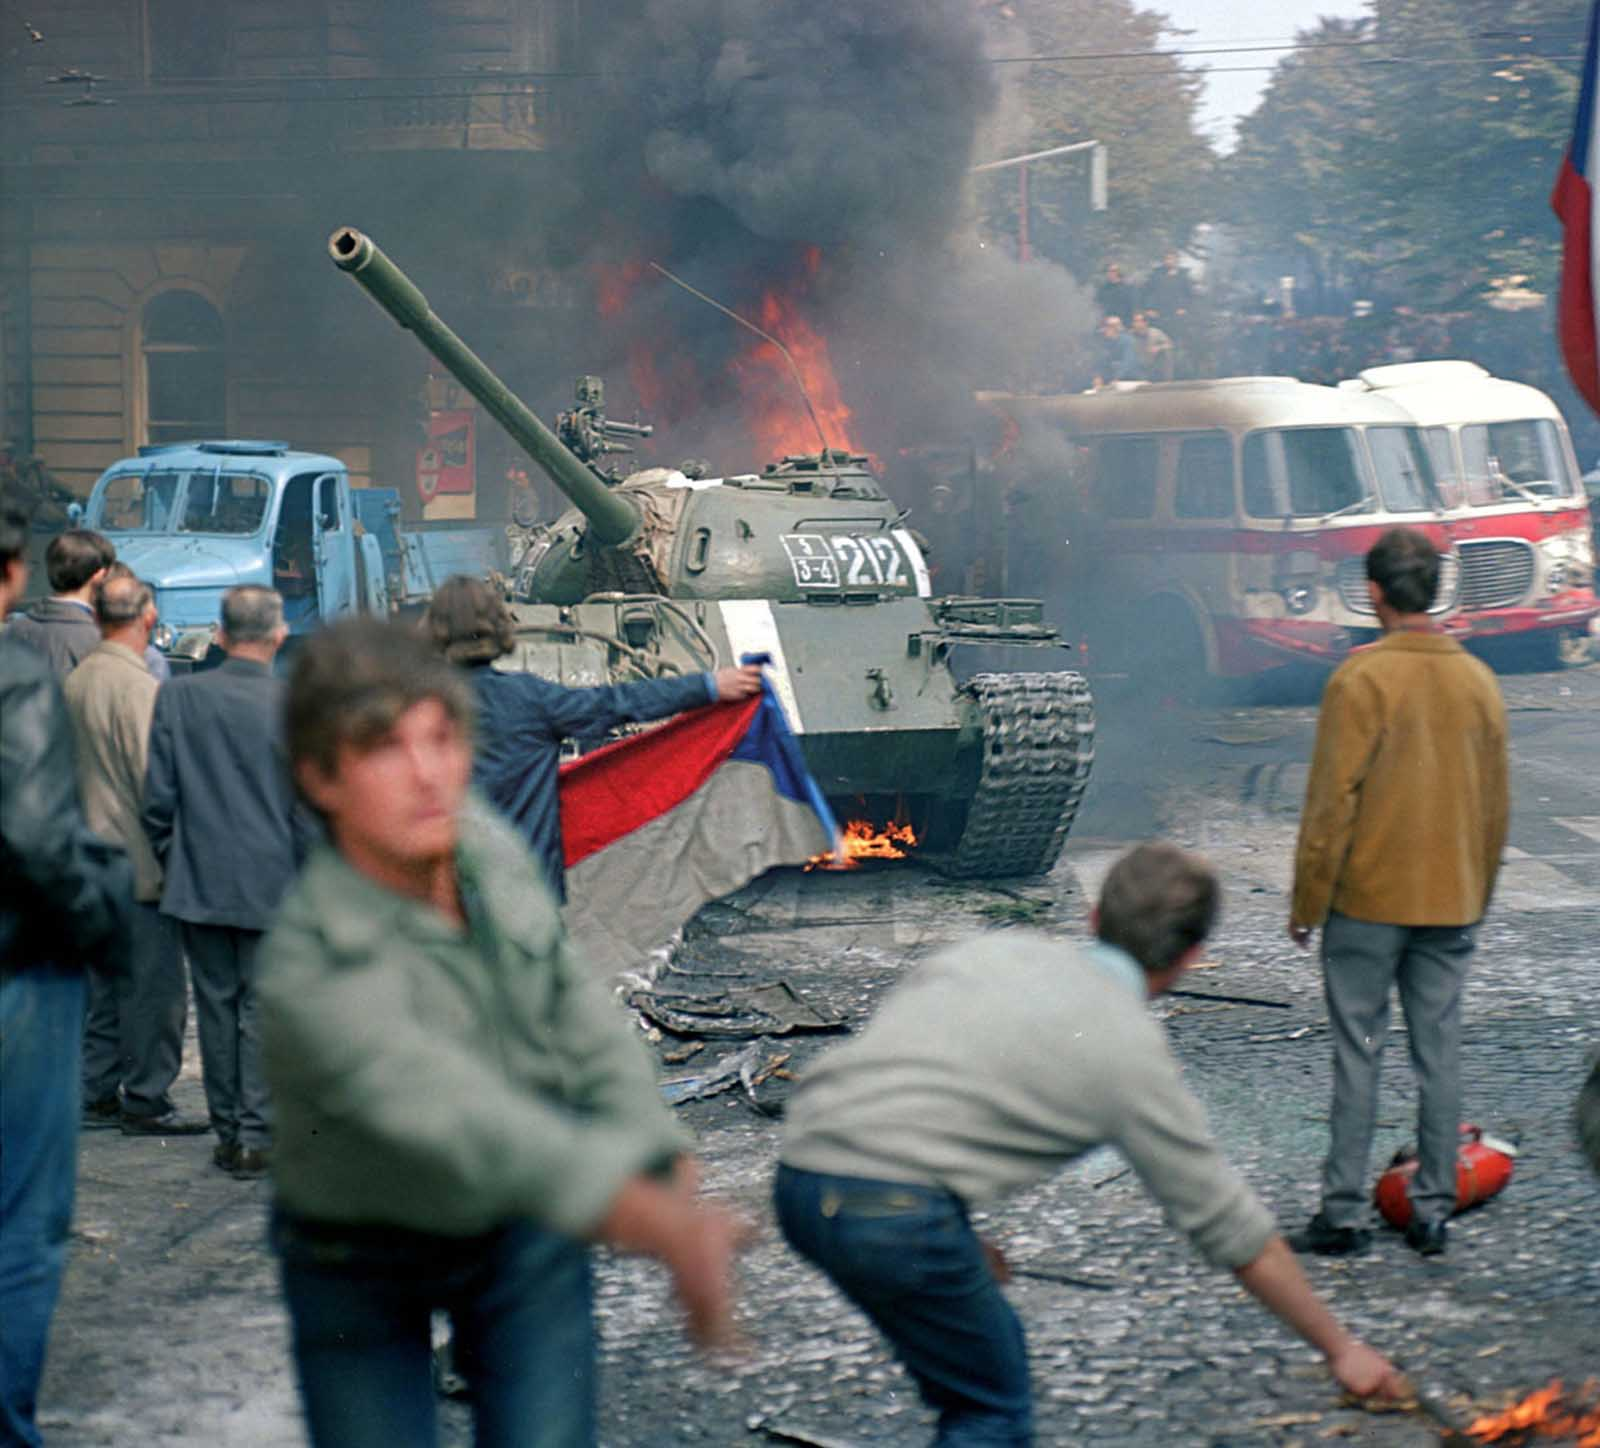 Prague residents, carrying a Czechoslovakian flag and throwing Molotov cocktails, attempt to stop a Soviet tank in downtown Prague on August 21, 1968.